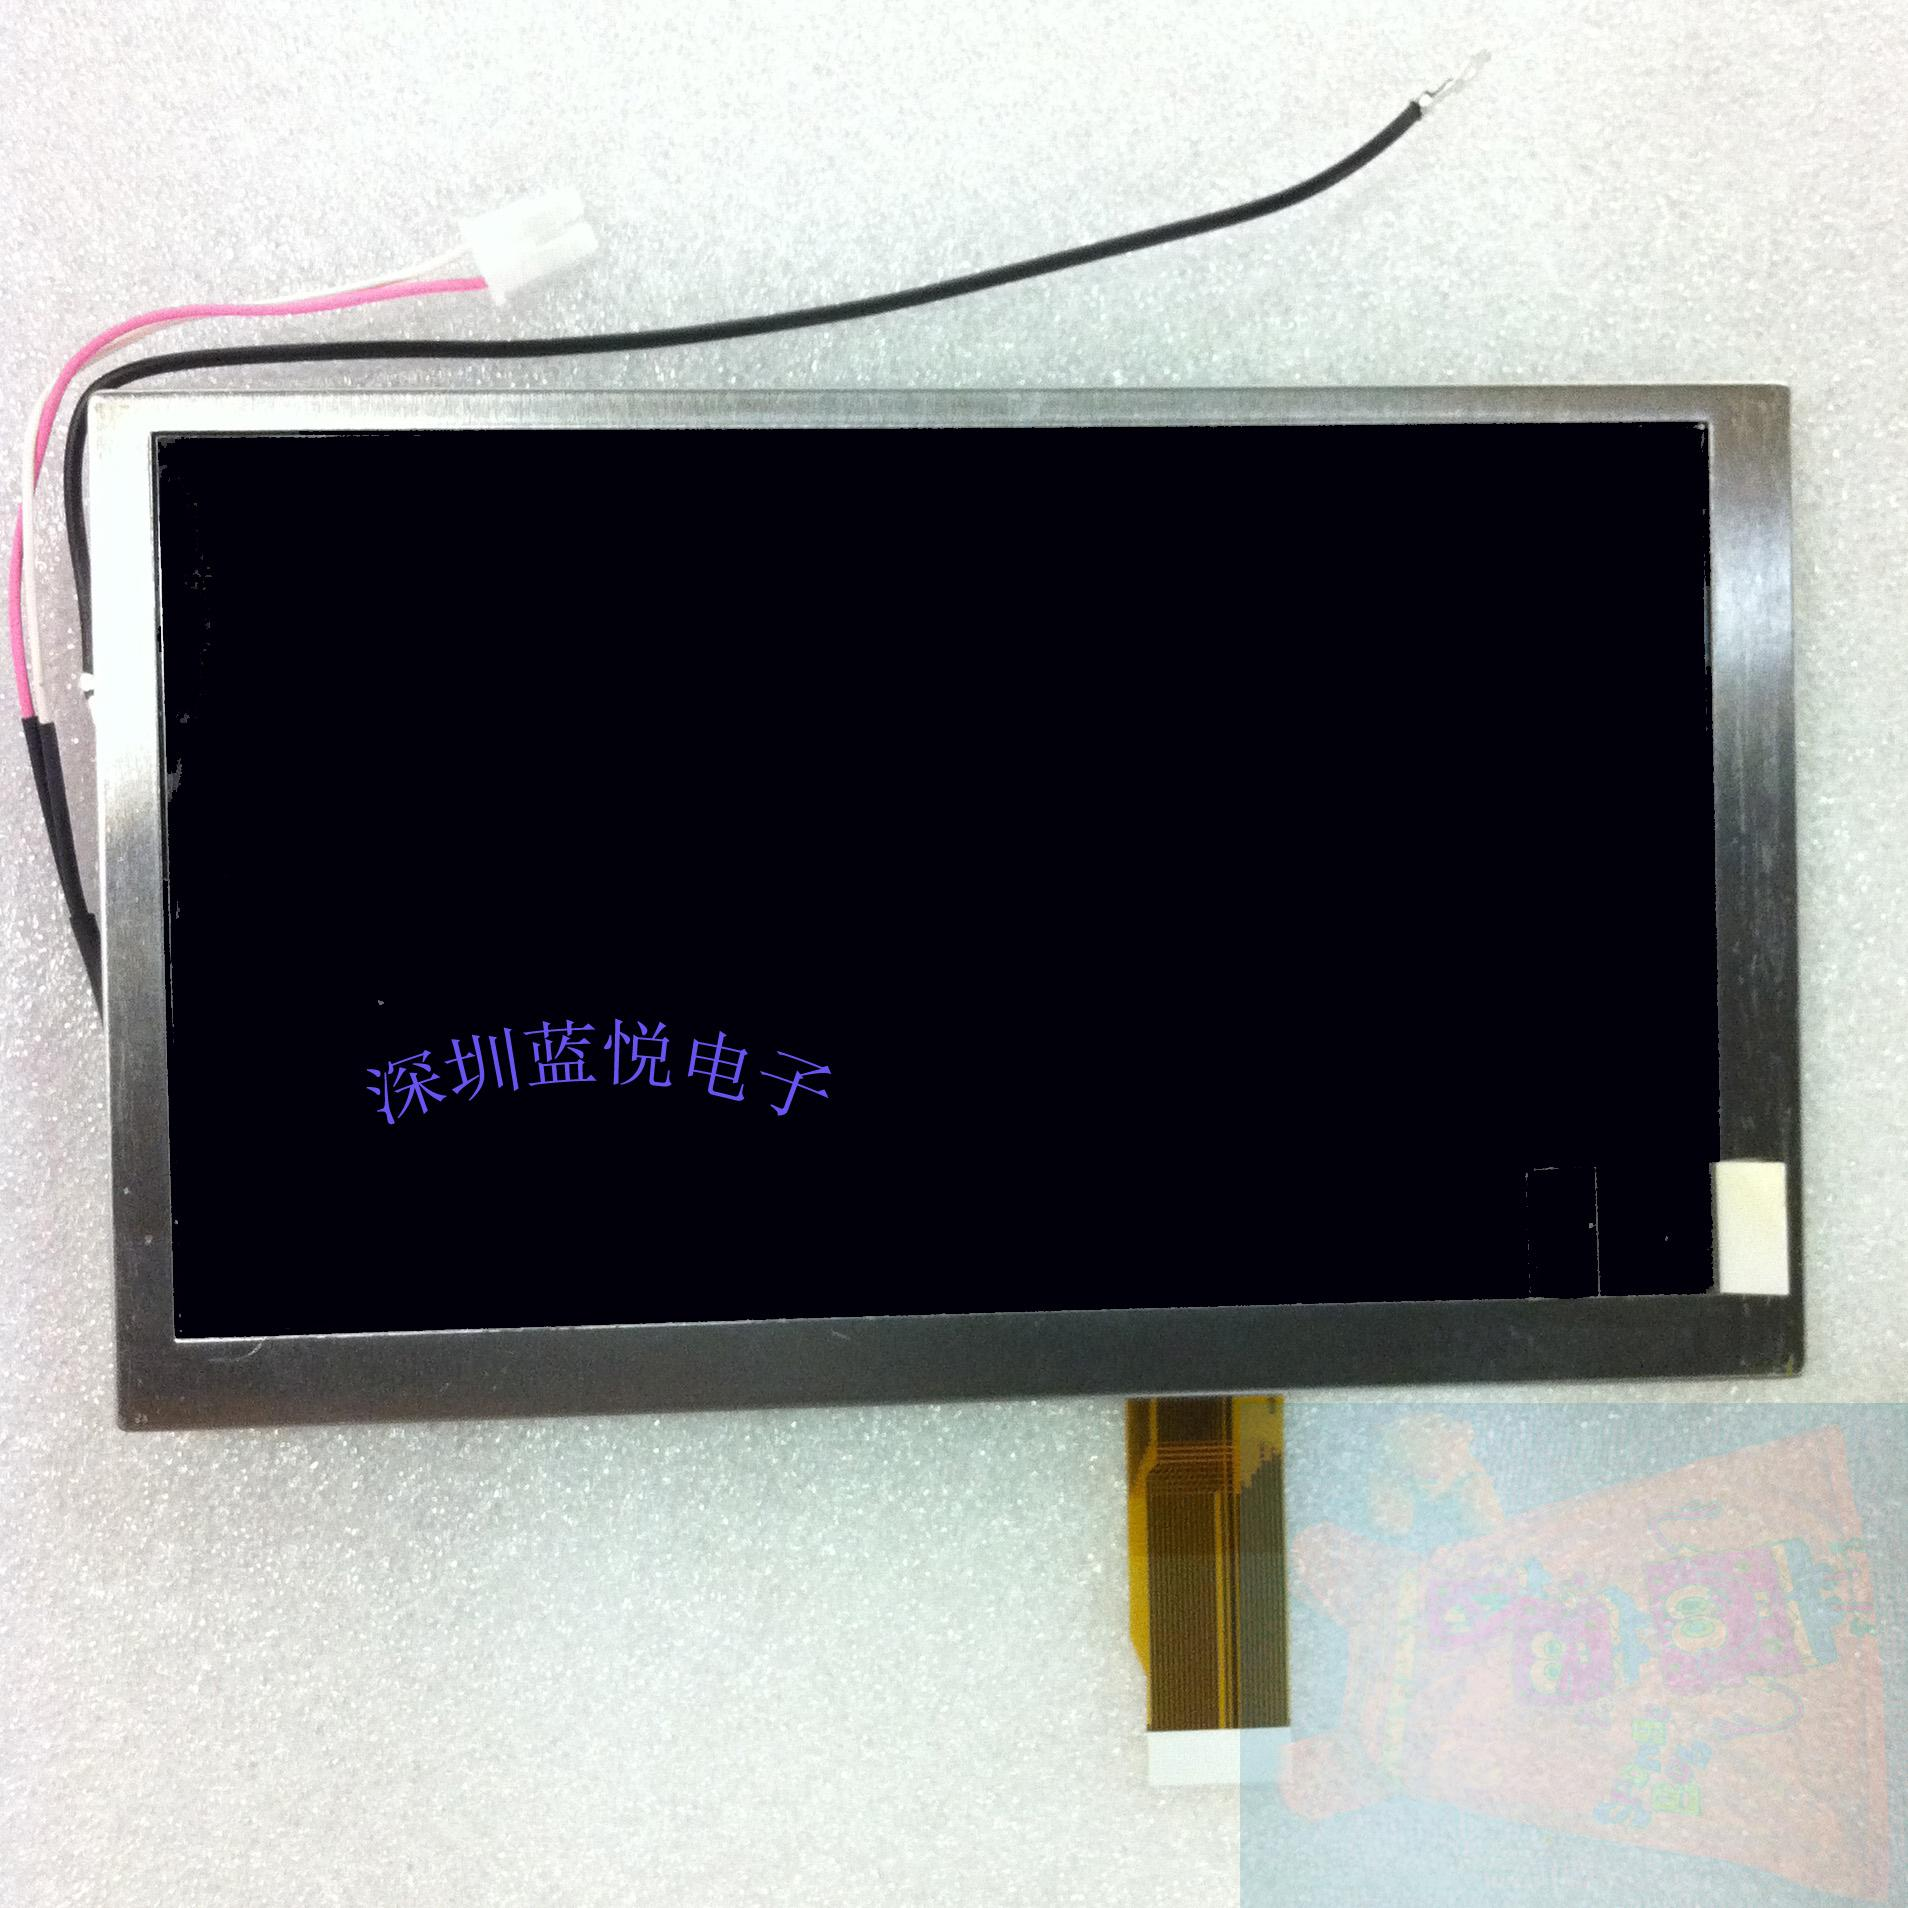 ZhiYuSun 6.2 PVI LCD Screen pw062xs3 6.2 Screen Touch Screen Free shipping подушка dream time dream time mp002xu0dwqq